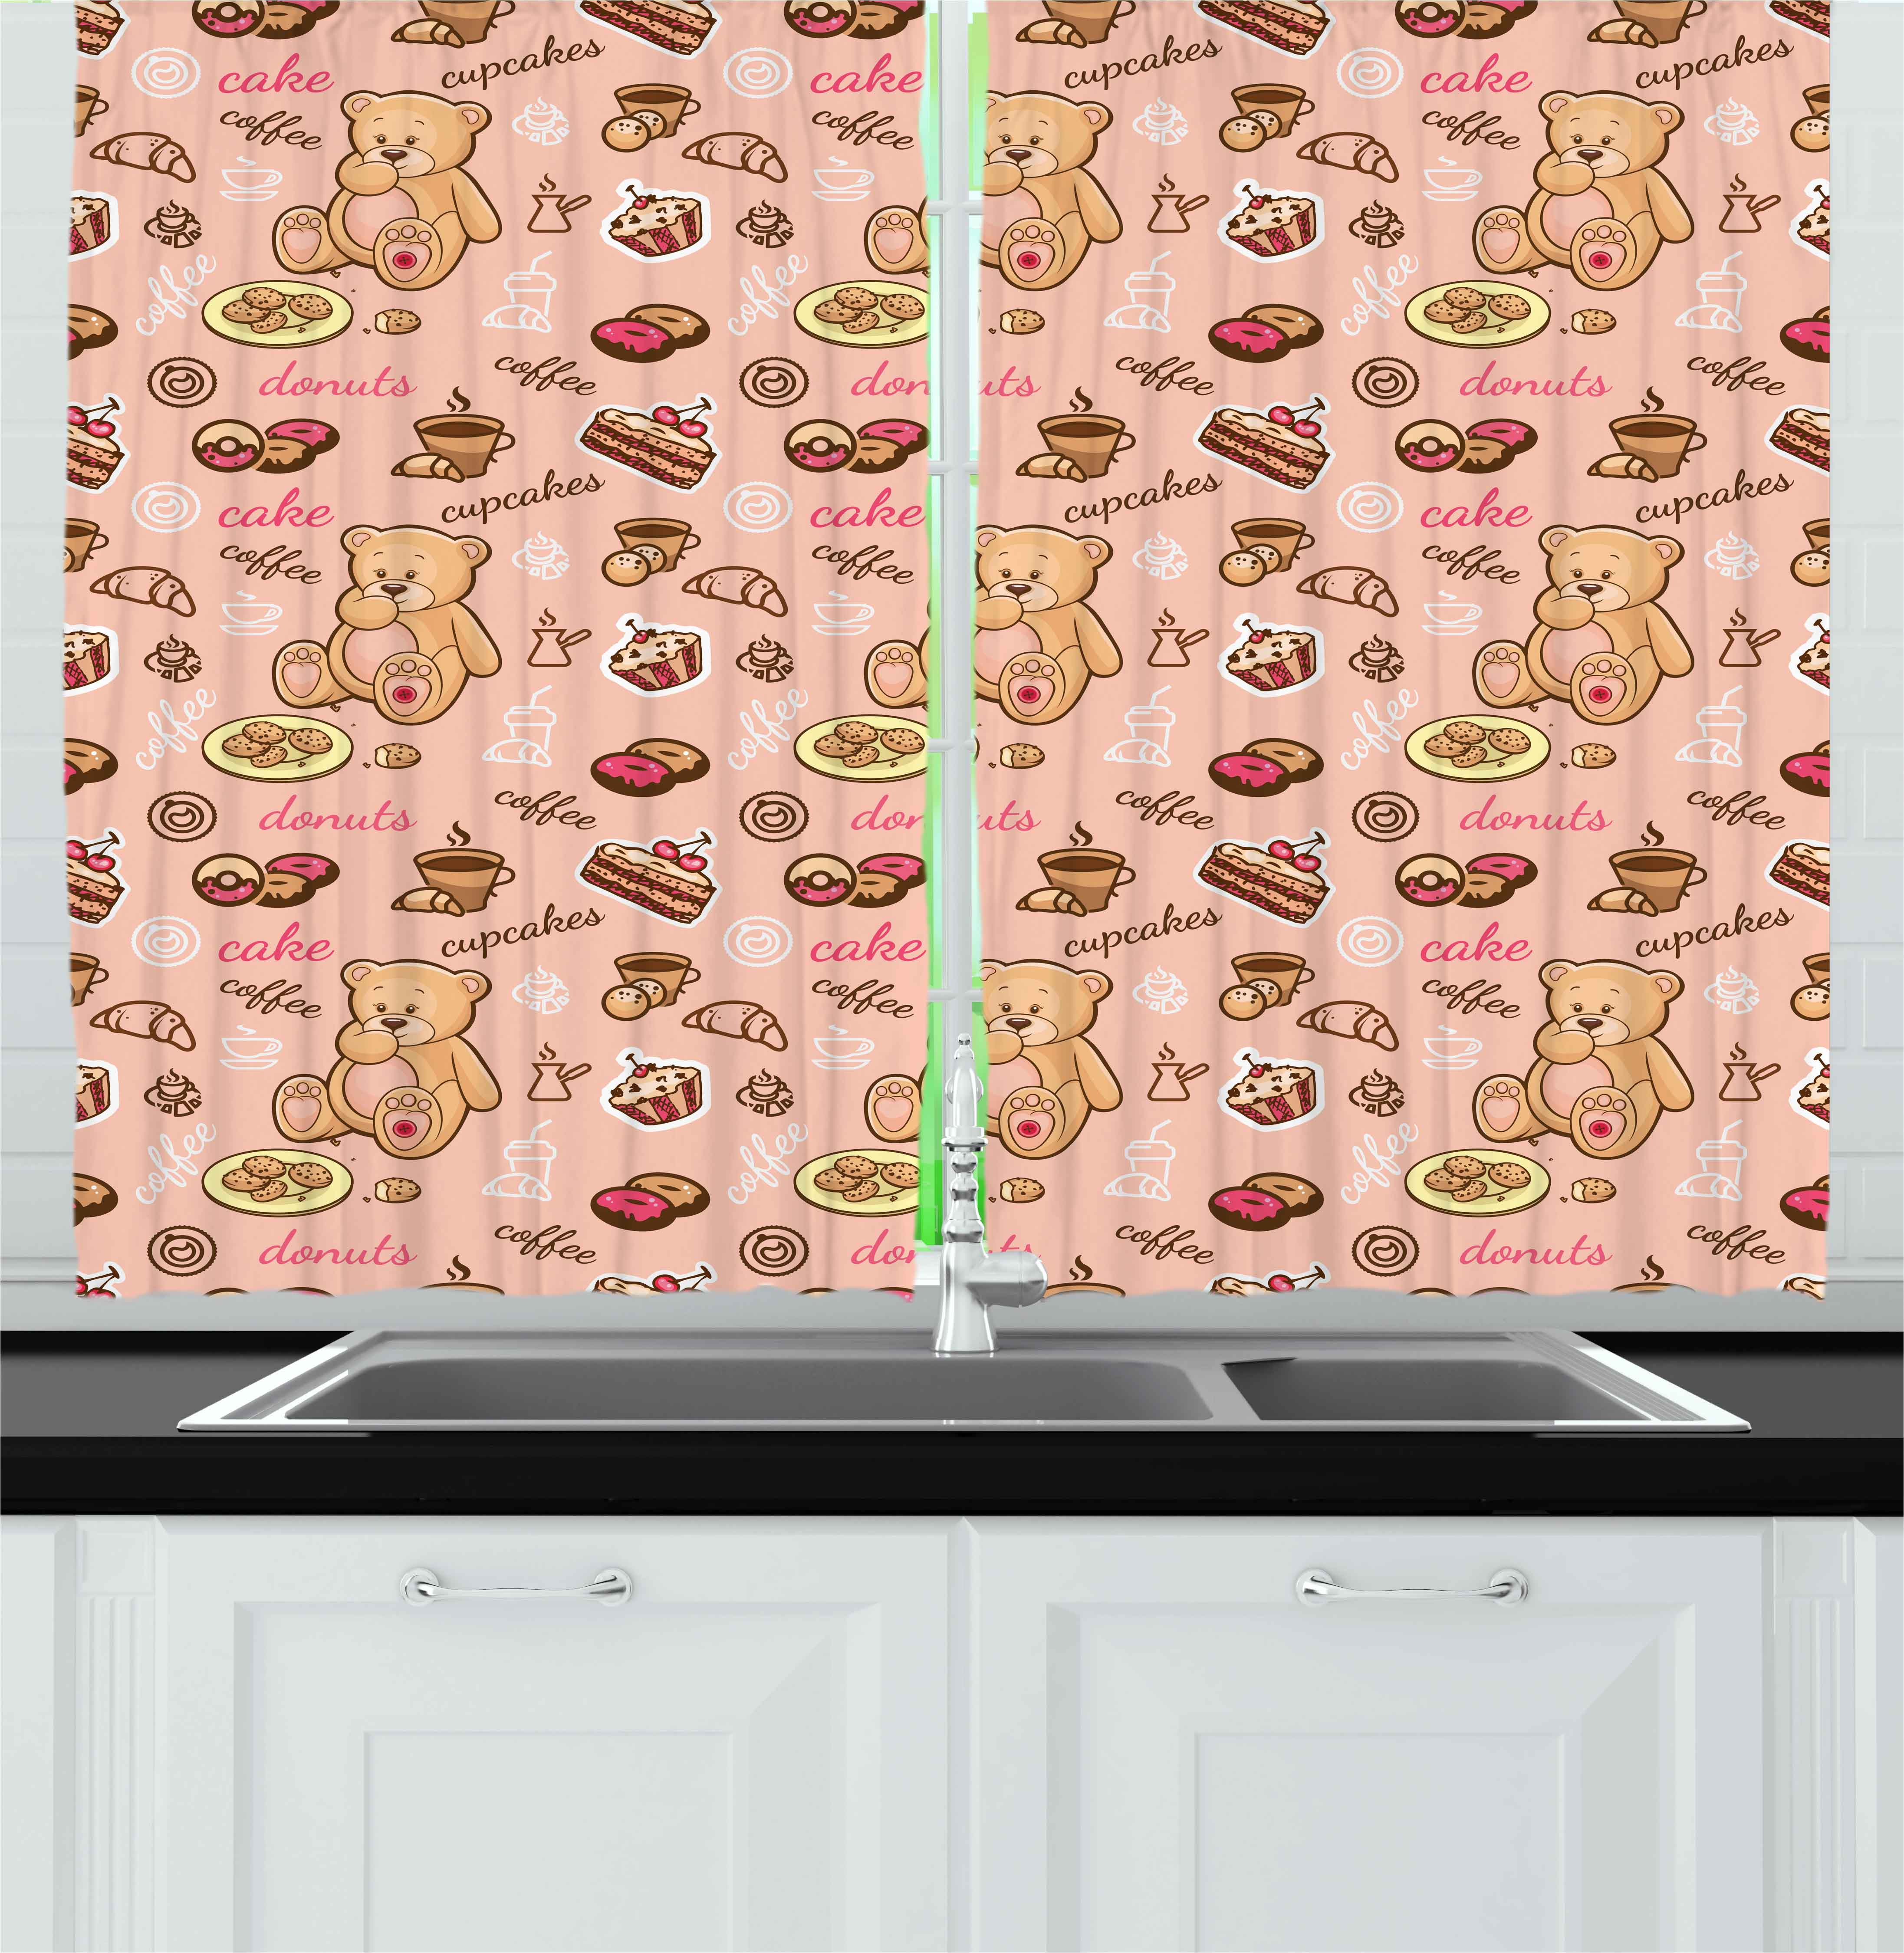 Kids Curtains 2 Panels Set, Teddy Bear with Cupcakes Cookies Donuts Cakes Cute Playroom Cartoon Print, Window Drapes for Living Room Bedroom, 55W X 39L Inches, Coral Pink Sand Brown, by Ambesonne